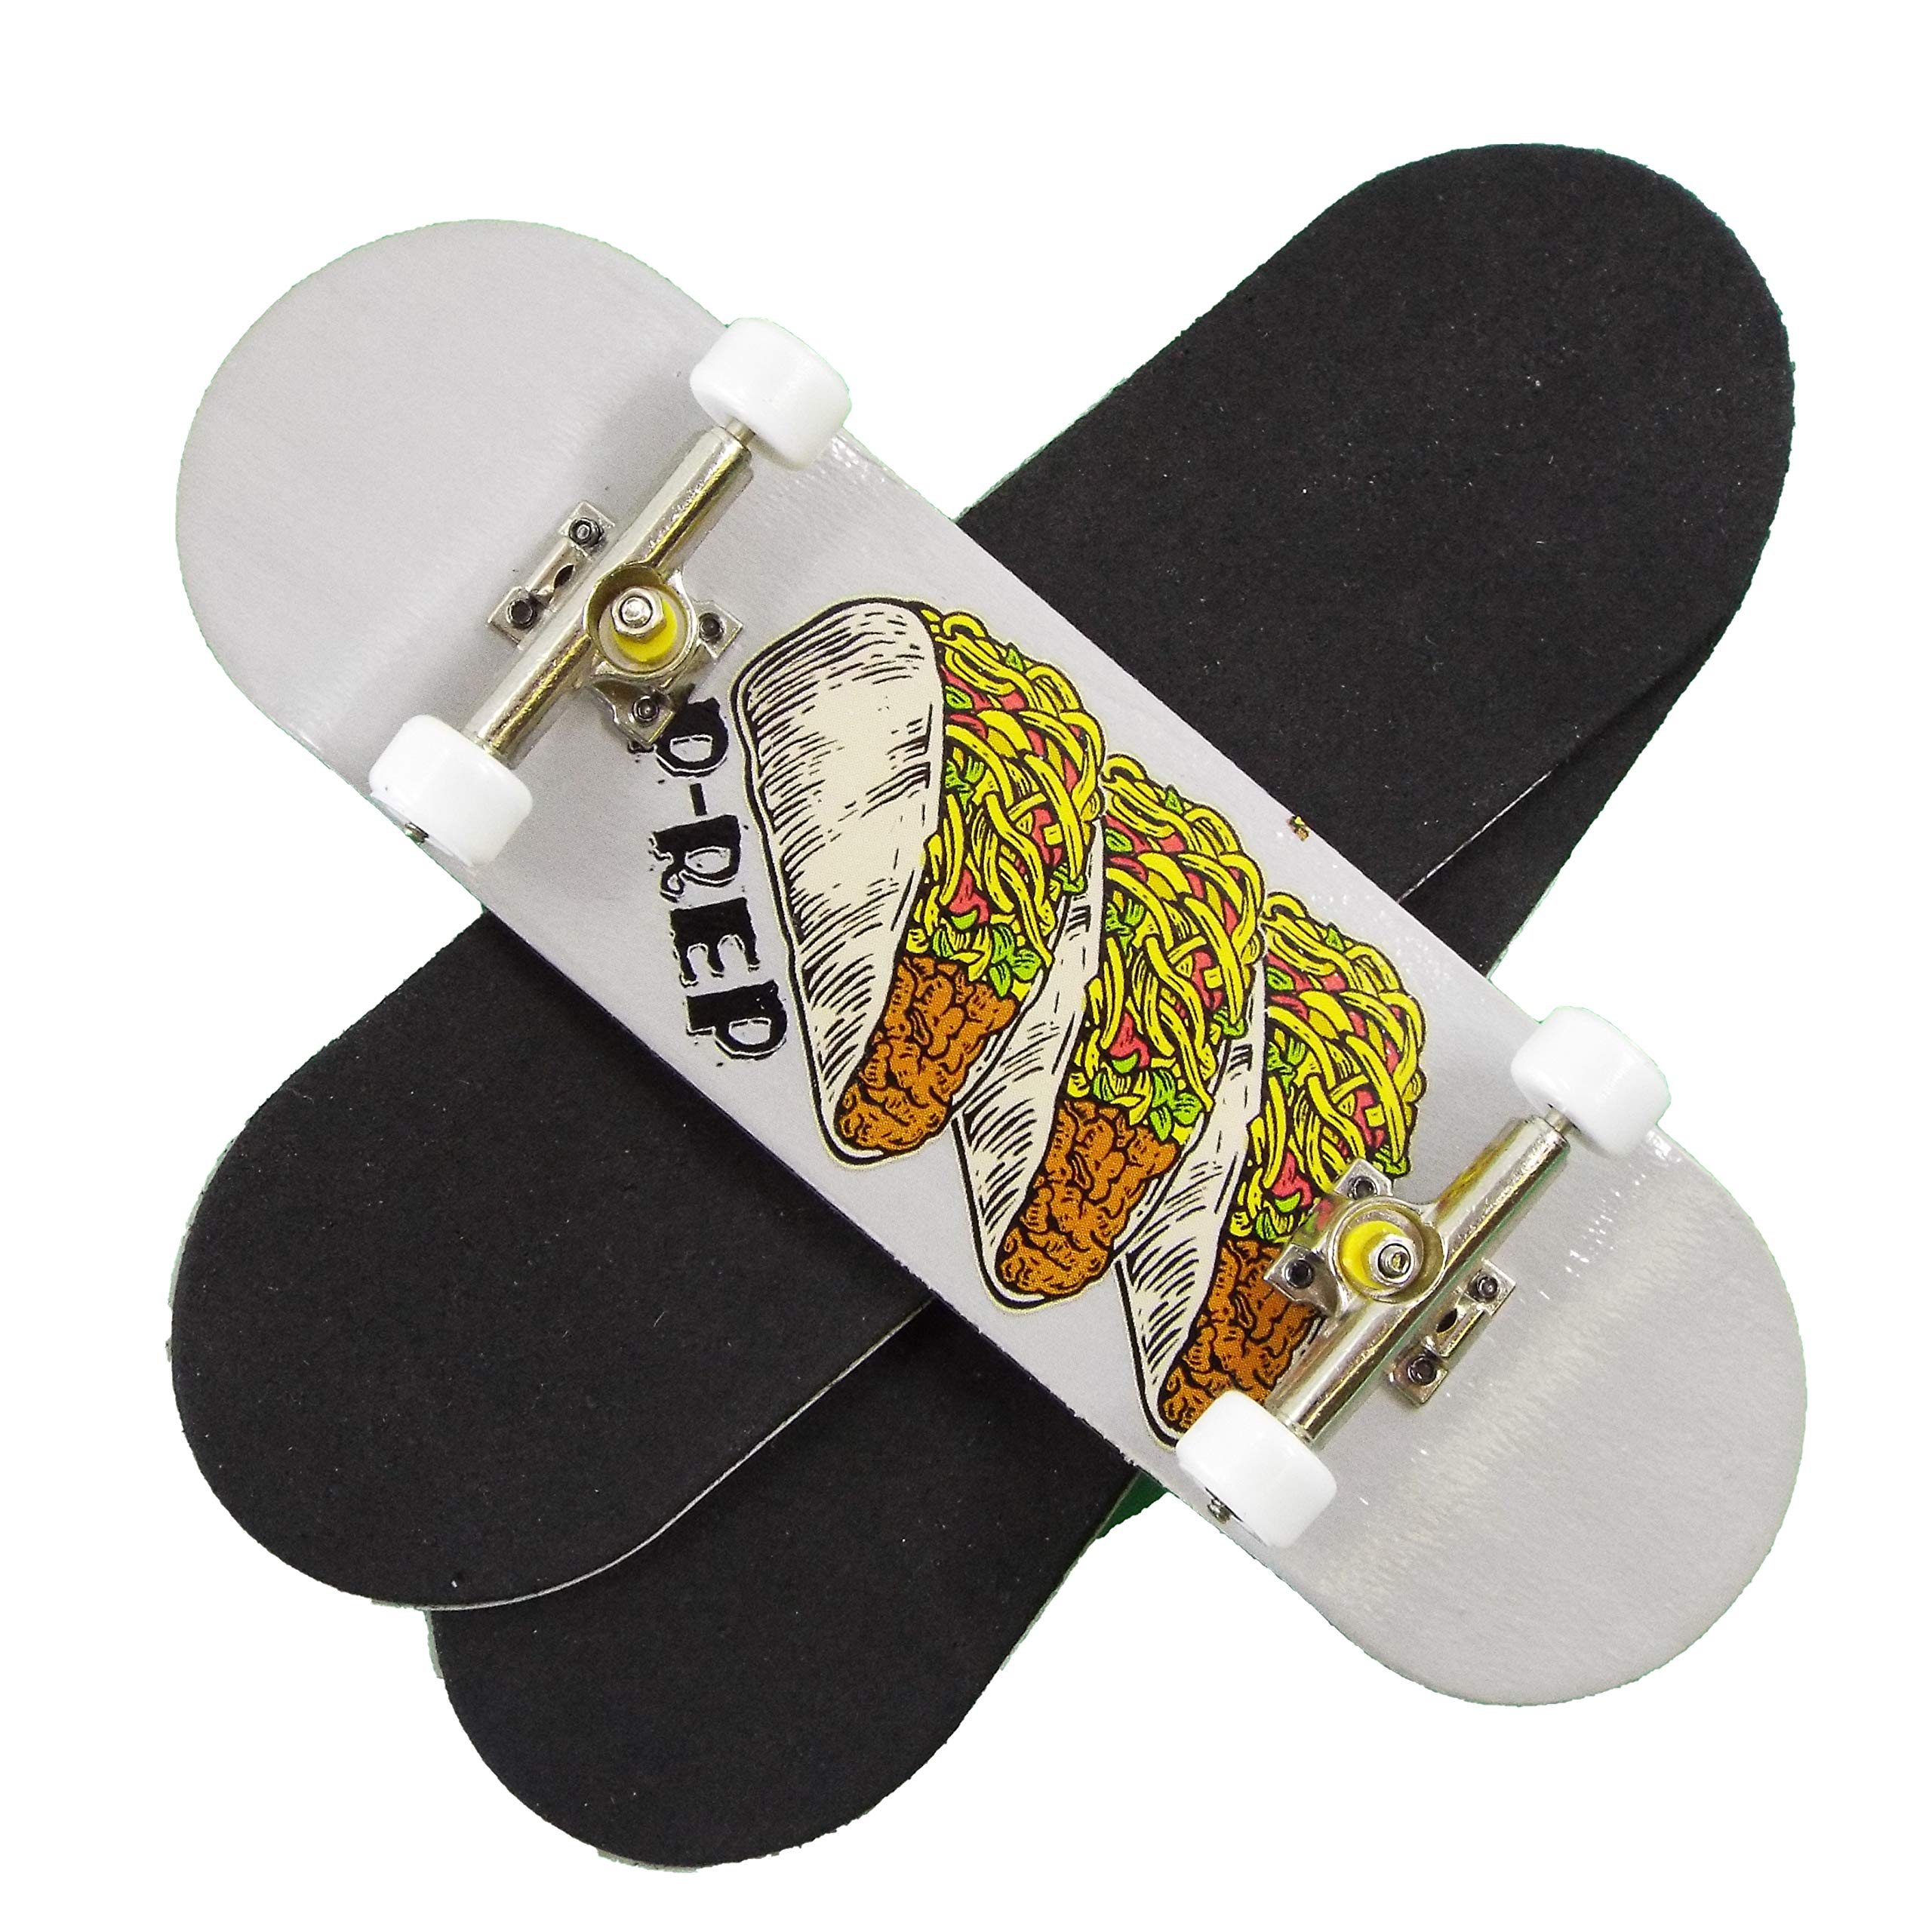 P-REP Starter Complete Wooden Fingerboard 30mm x 100mm - Tres Taco